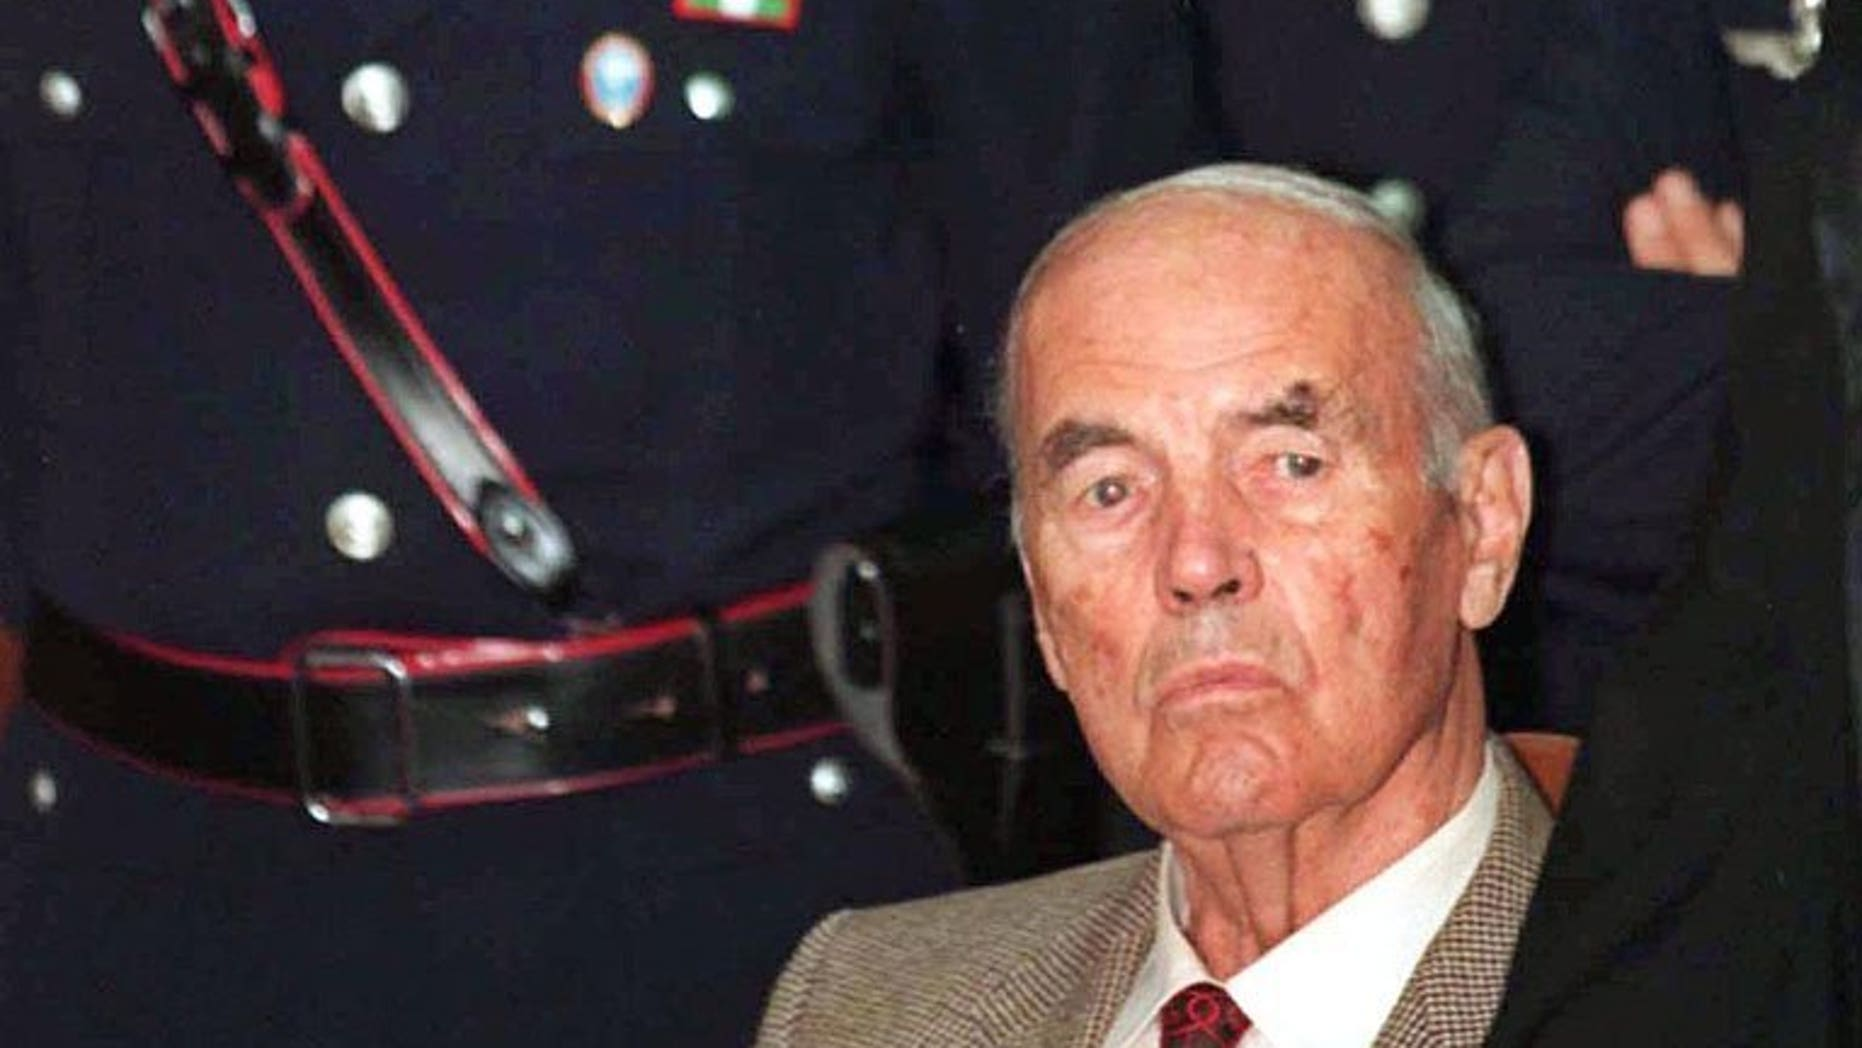 This file picture taken on July 30, 1996 shows former German SS officer Erich Priebke surrounded by police at a military court in Rome. The 100th birthday of Priebke -- one of the last Nazi criminals alive -- has sparked calls for a public apology from relatives of his victims 69 years after their murder and resentment over his freedom of movement.